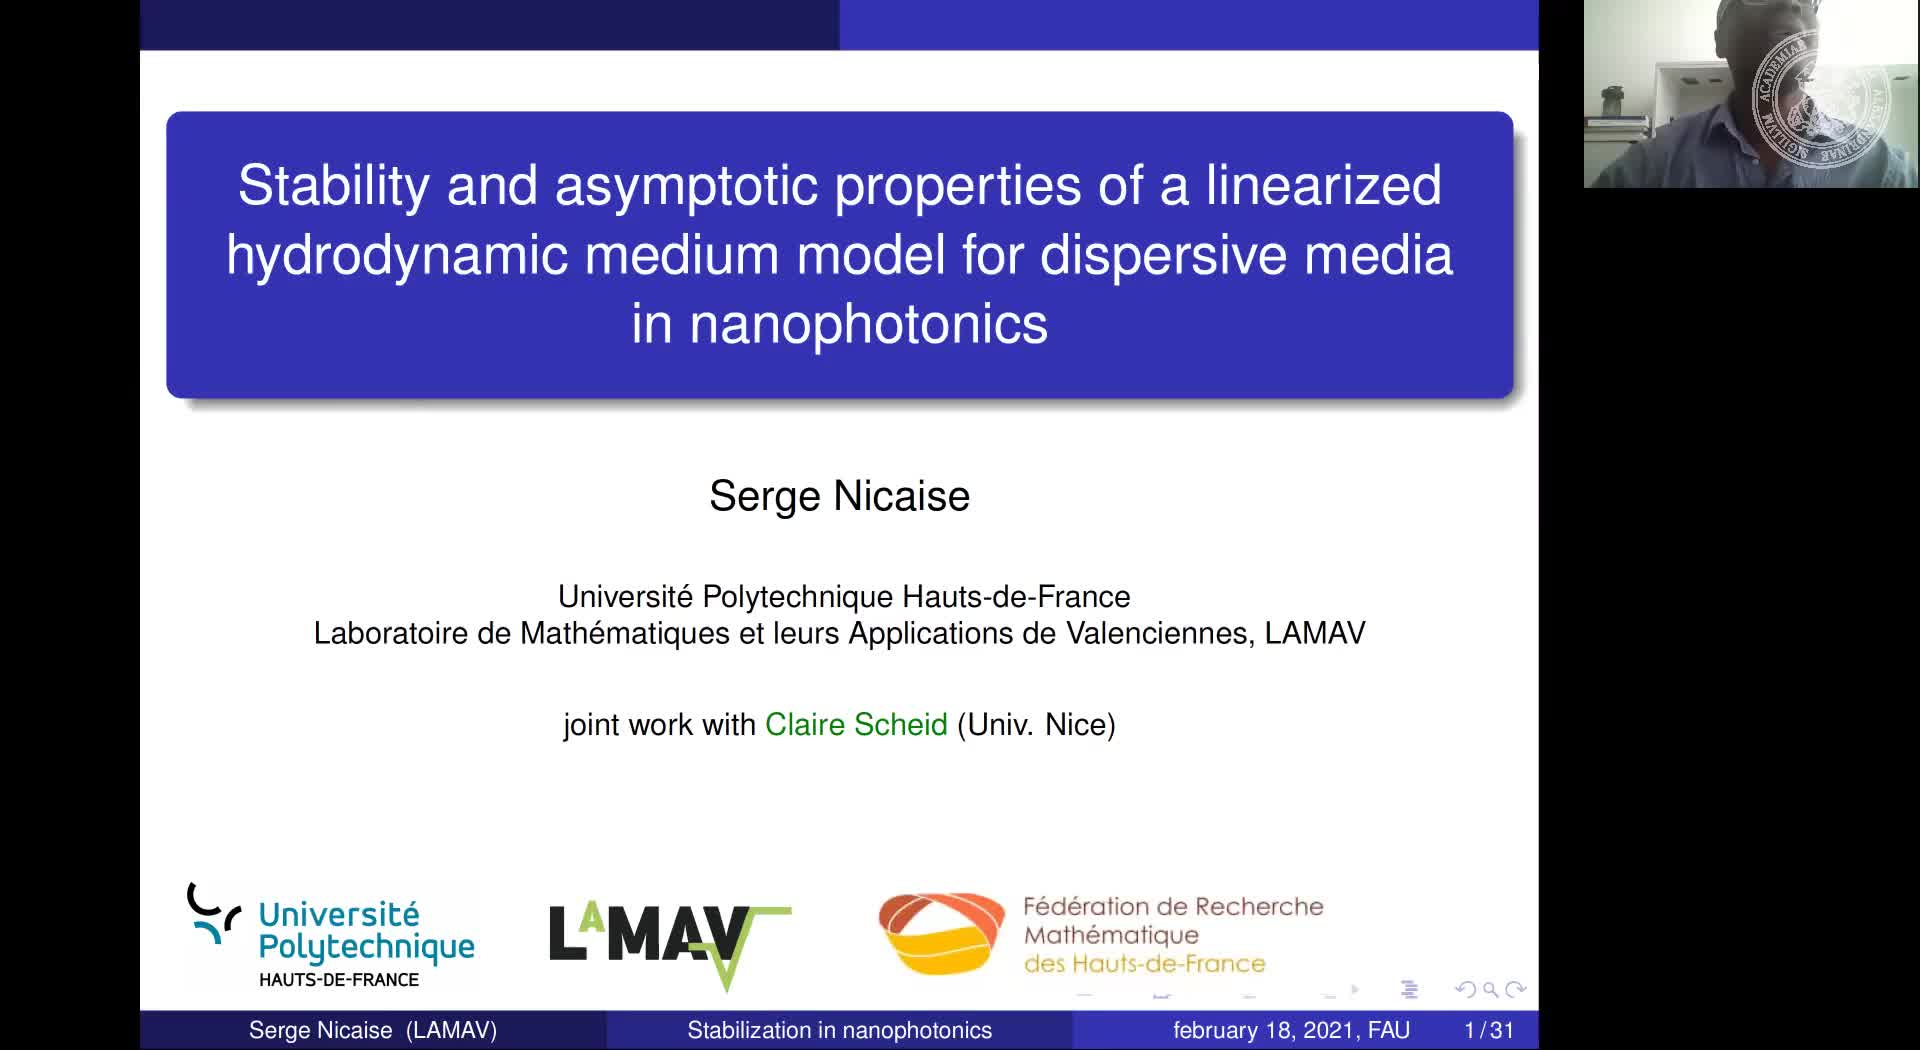 Stability and asymptotic properties of a linearized hydrodynamic medium model for dispersive media in nanophotonics (S. Nicaise, Université Polytechnique Hauts-de-France) preview image